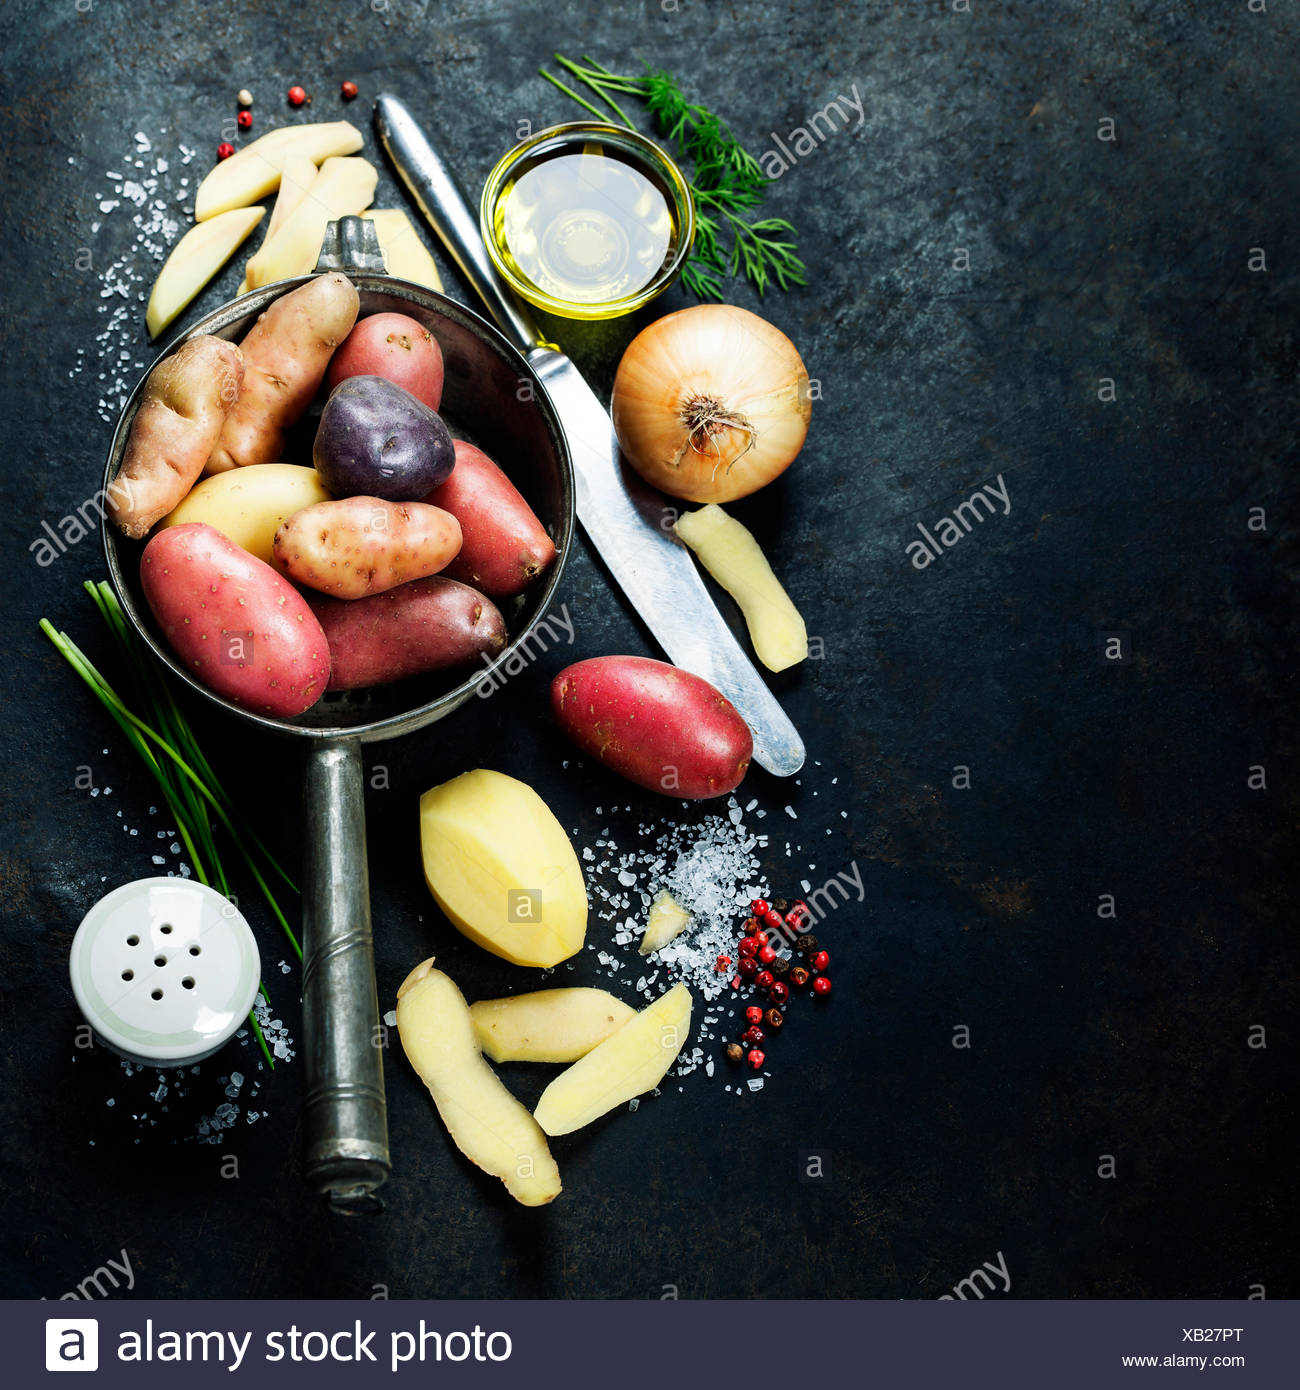 Potato preparation. Fresh organic vegetables. Food background. Healthy food from garden - Stock Image